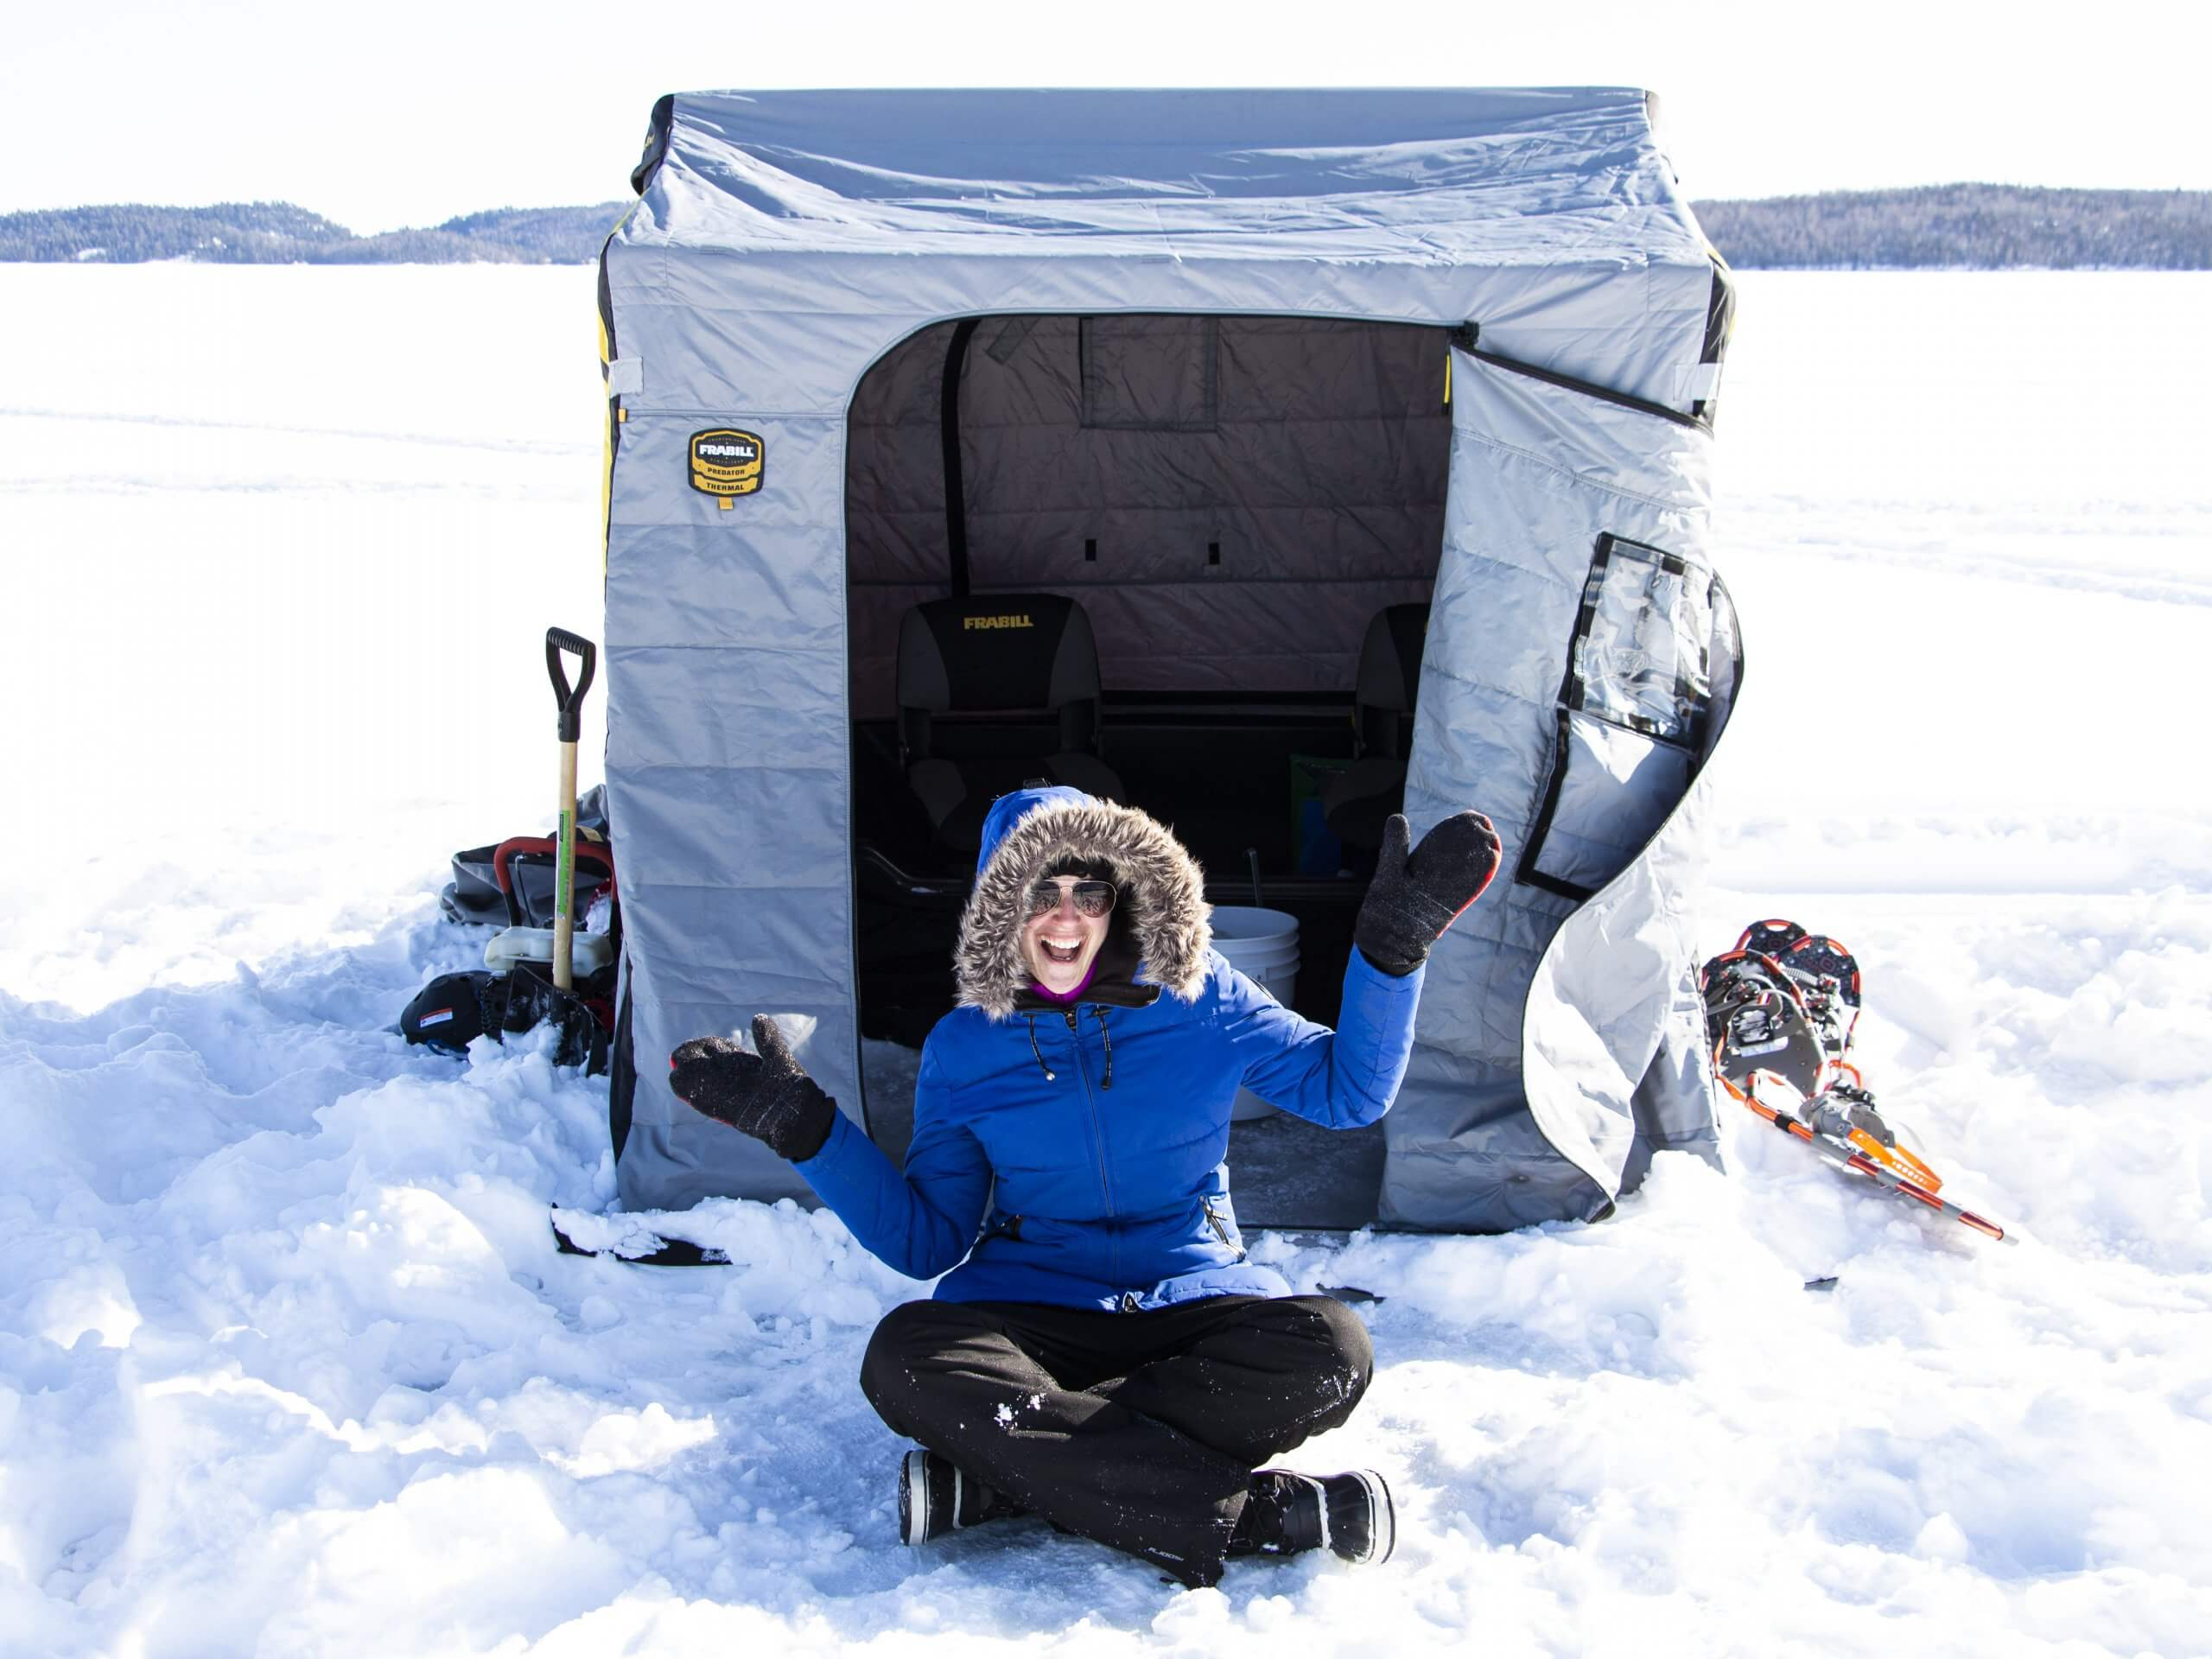 Winter Weekend at Windy Lake Provincial Park Welcome to Ice Fishing.LG